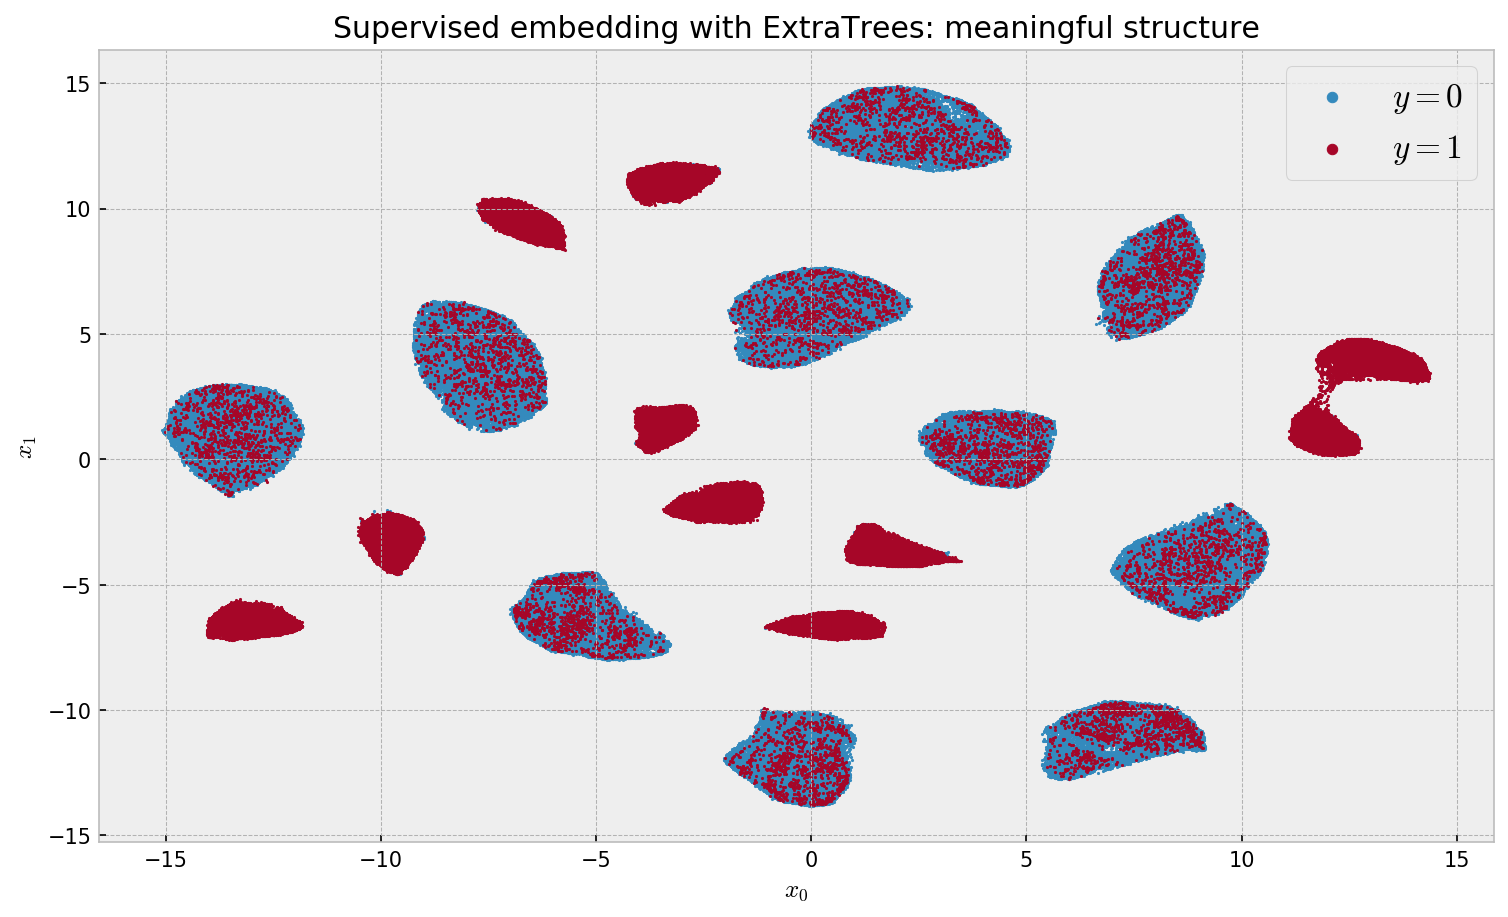 Supervised dimensionality reduction and clustering at scale with RFs with UMAP